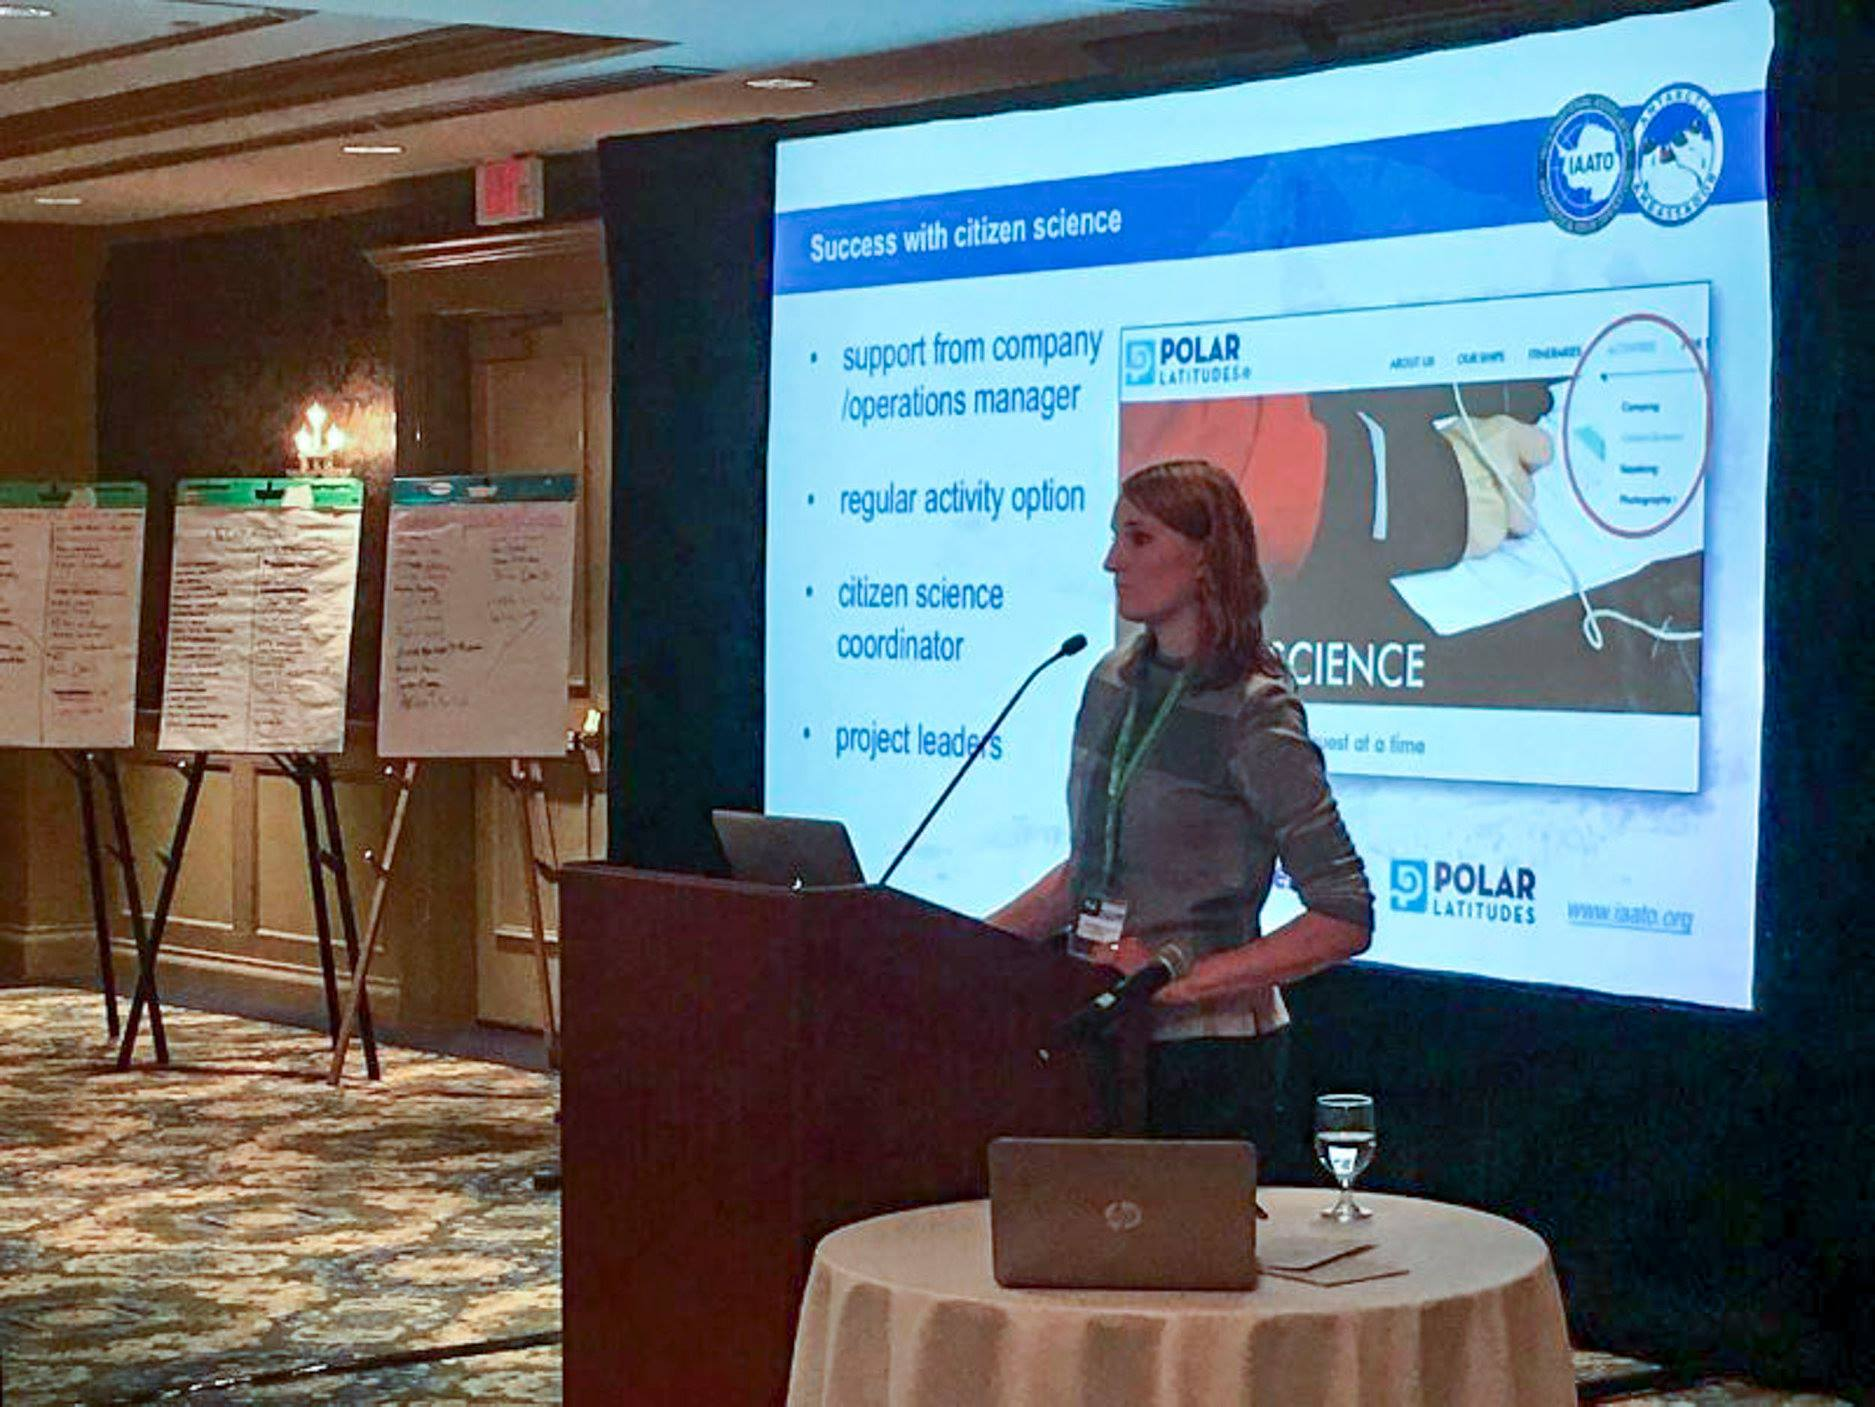 Annette Bombosch presents on the citizen science efforts of the polar tourism industry at IAATO's 27th Annual Meeting in Newport, RI.